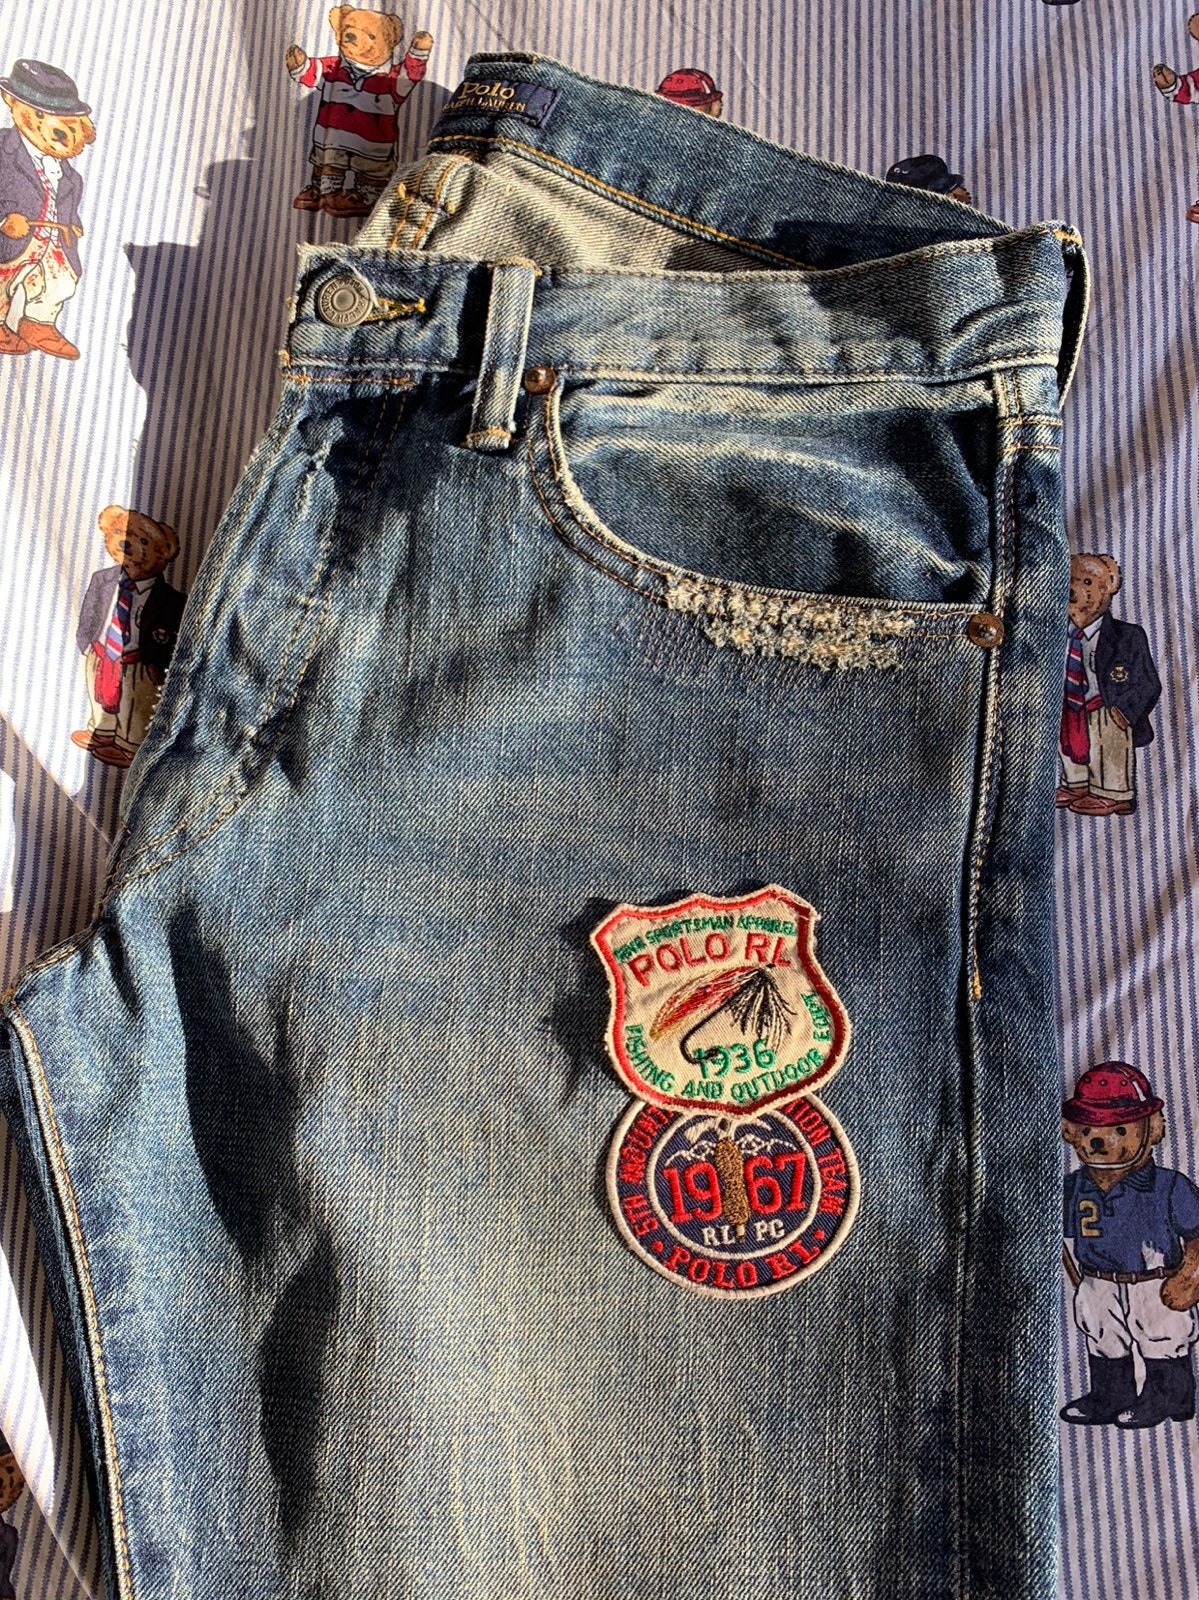 Ralph Lauren jeans with patches